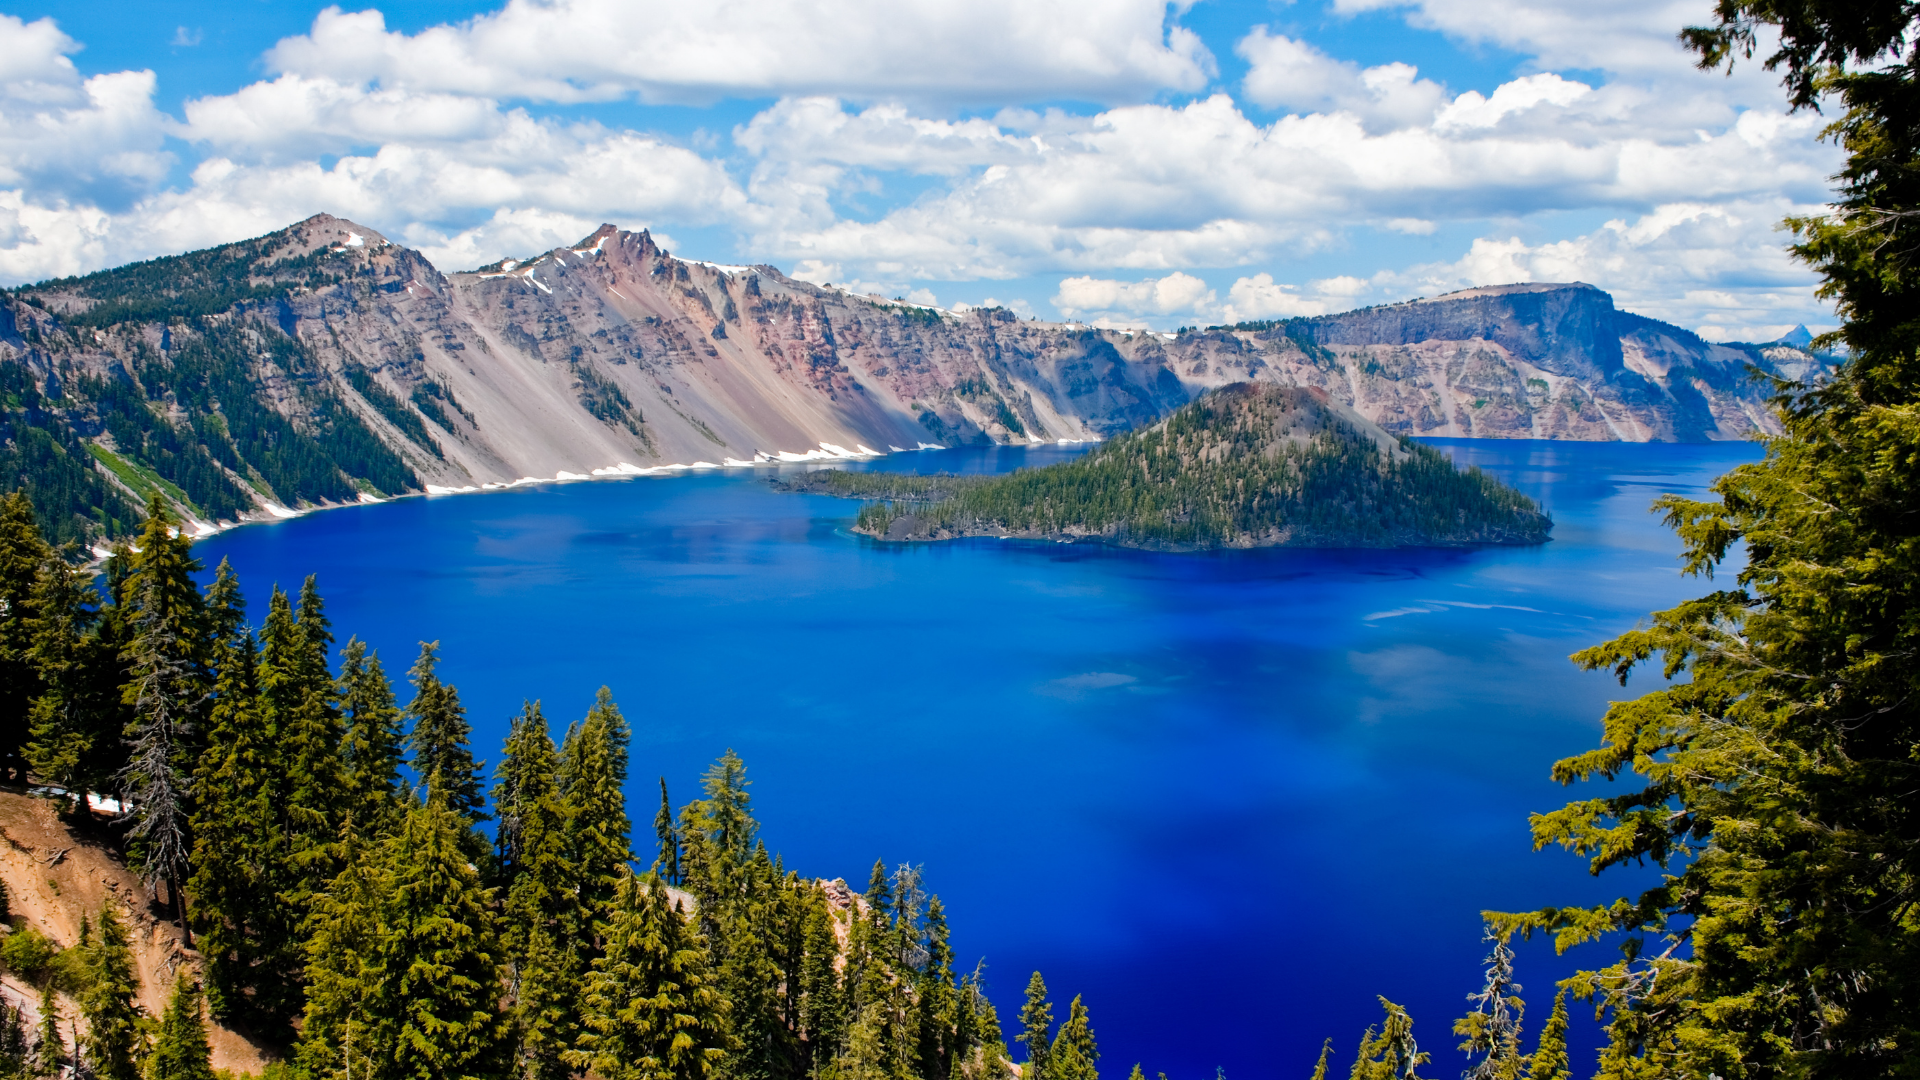 Glamping vs. Camping at Crater Lake Resort